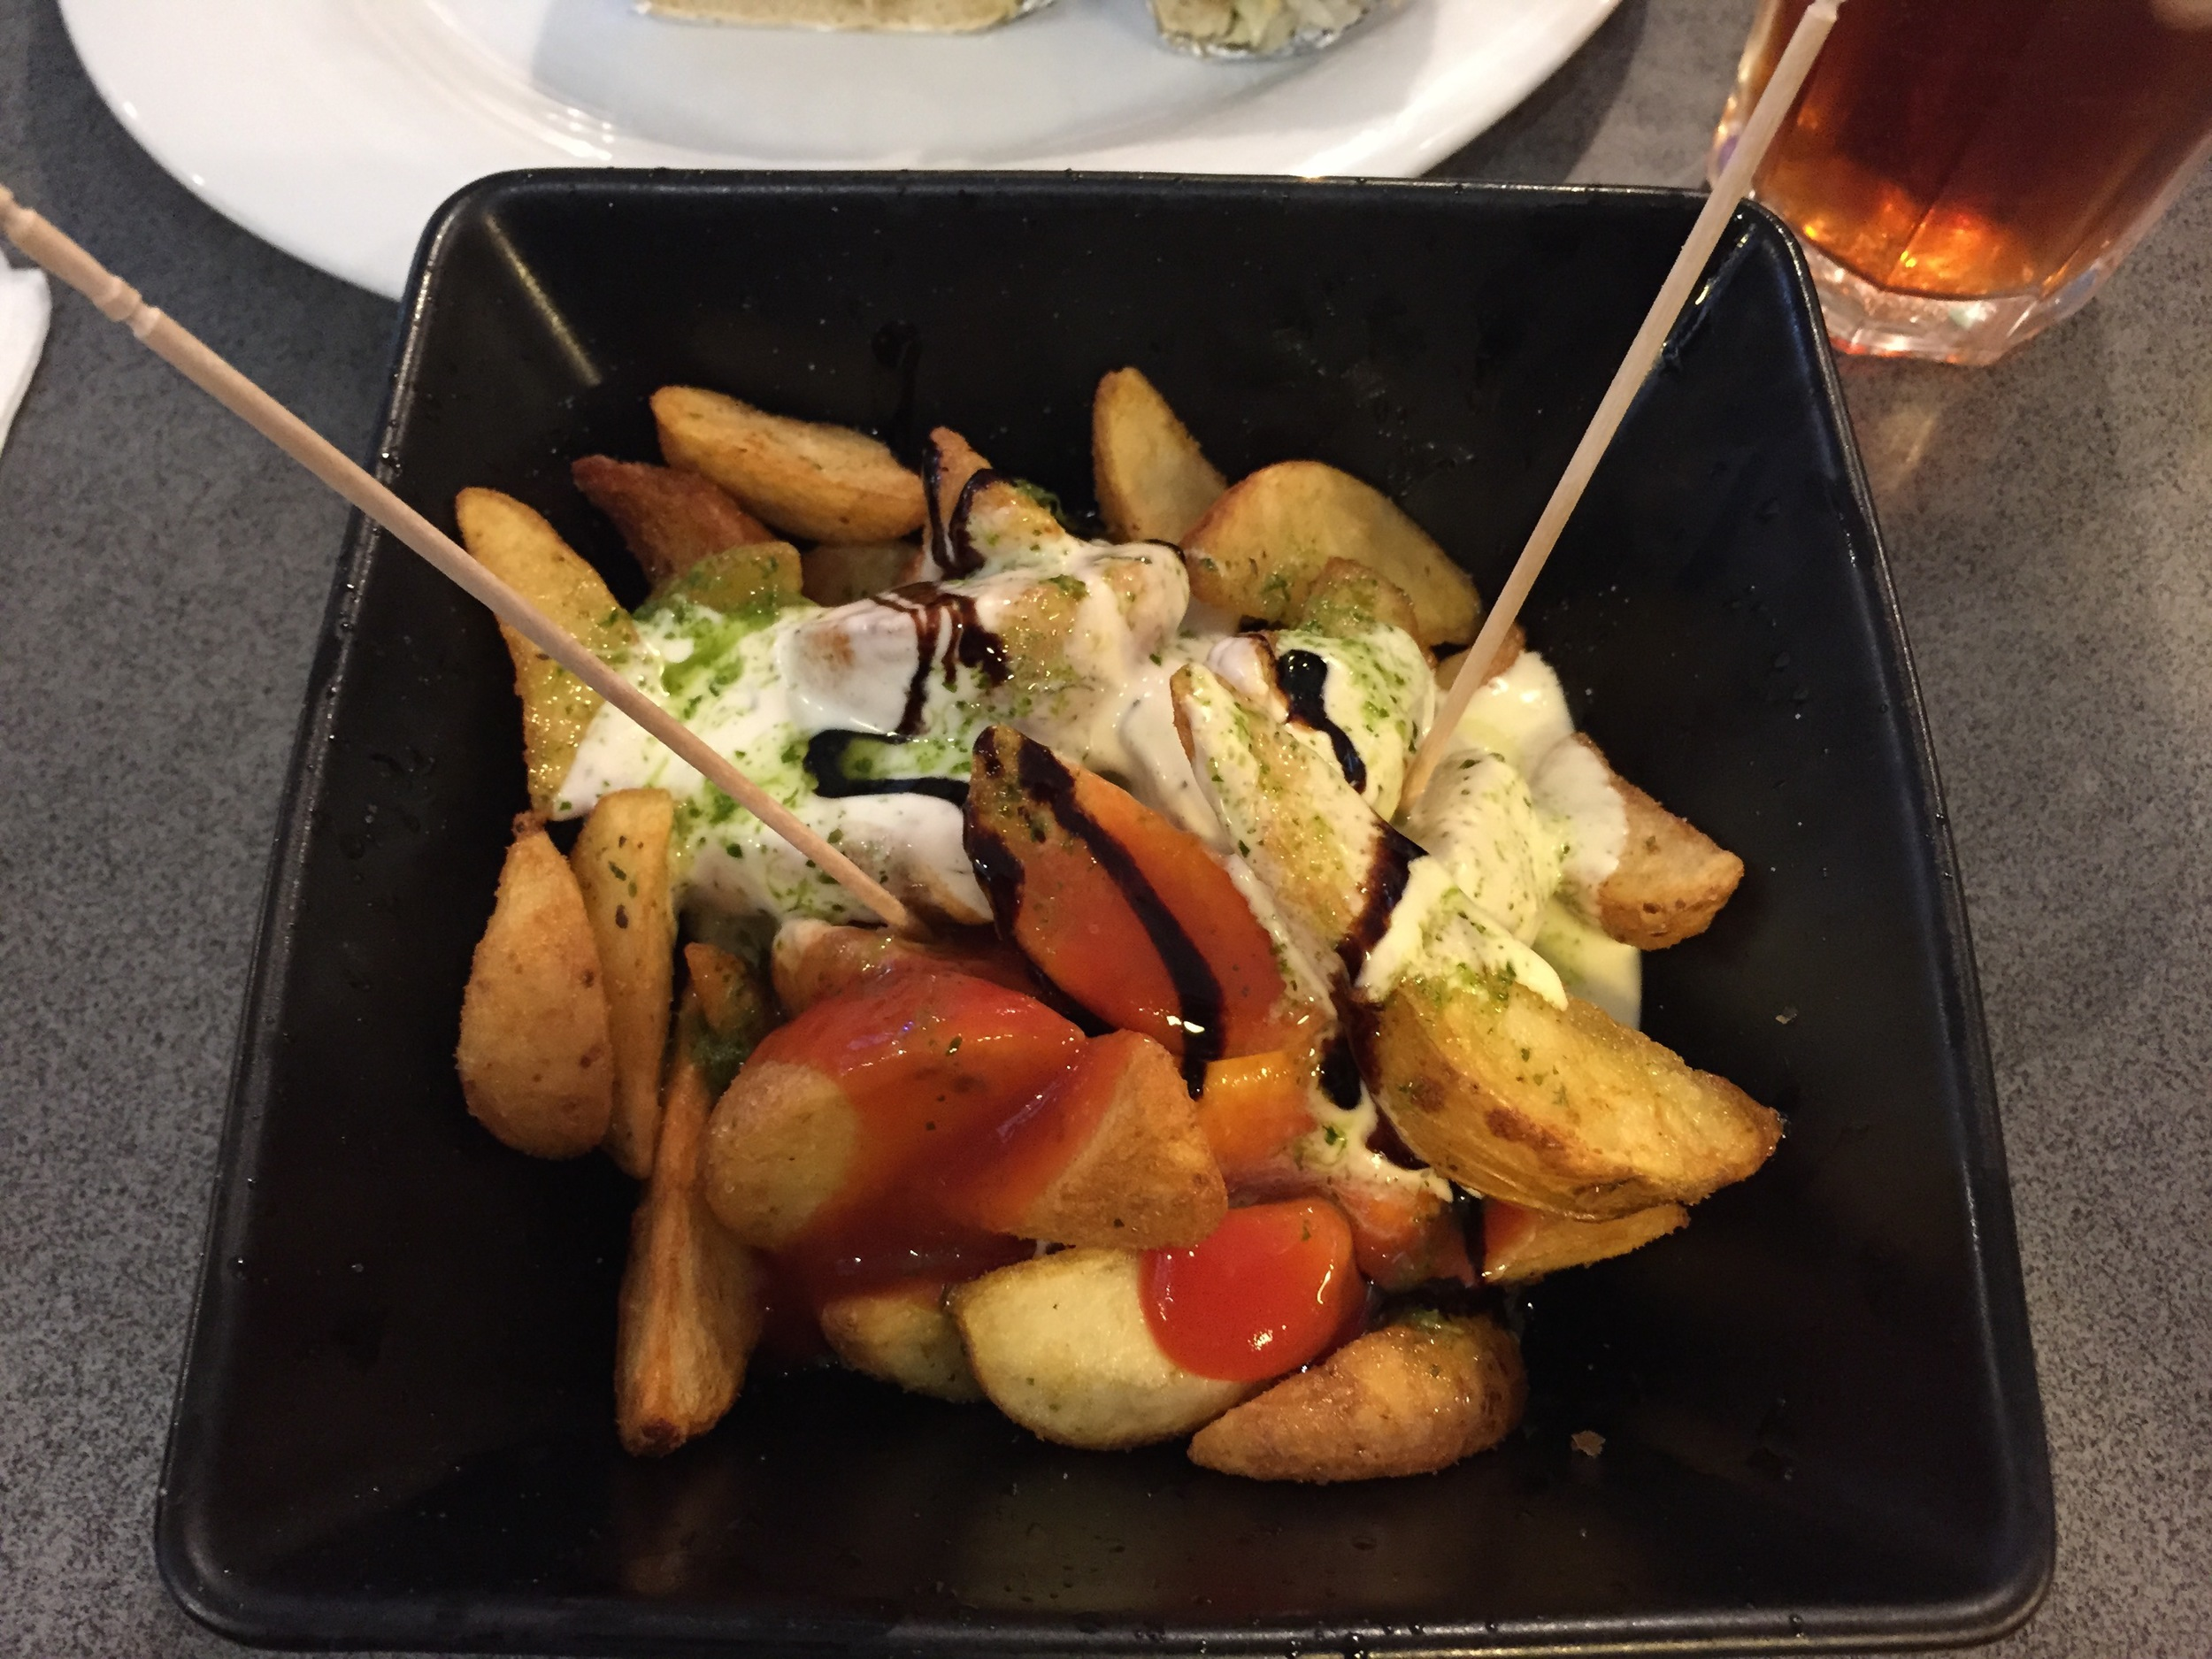 Patatas bravas at #BodeB wish I saved room for more of these after eating that huge sandwich